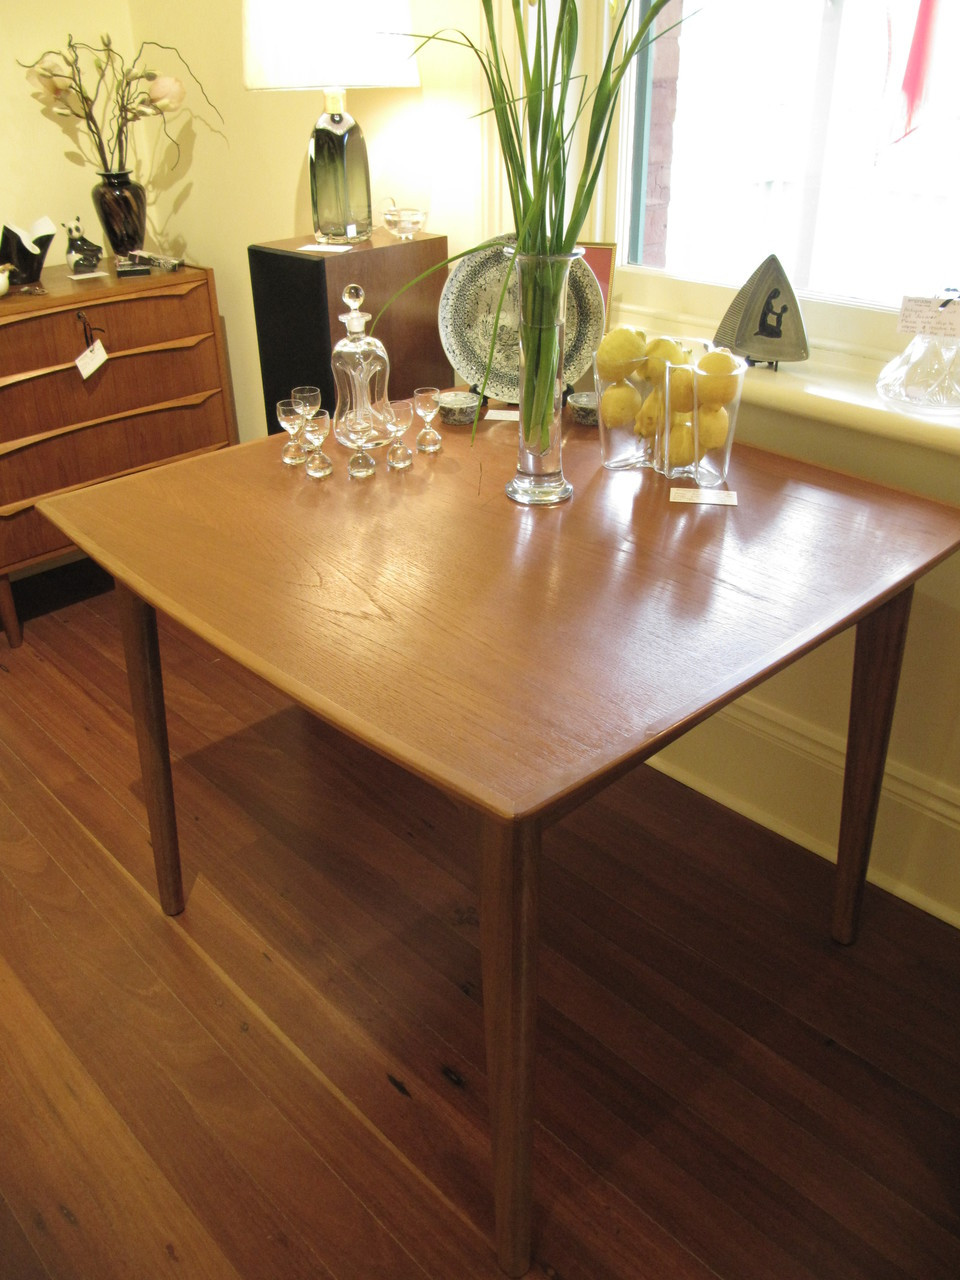 Vintage Noblett Teak Extension Dining Table In Stock : IMG419926052144117657012801280 from emprades.com.au size 960 x 1280 jpeg 251kB